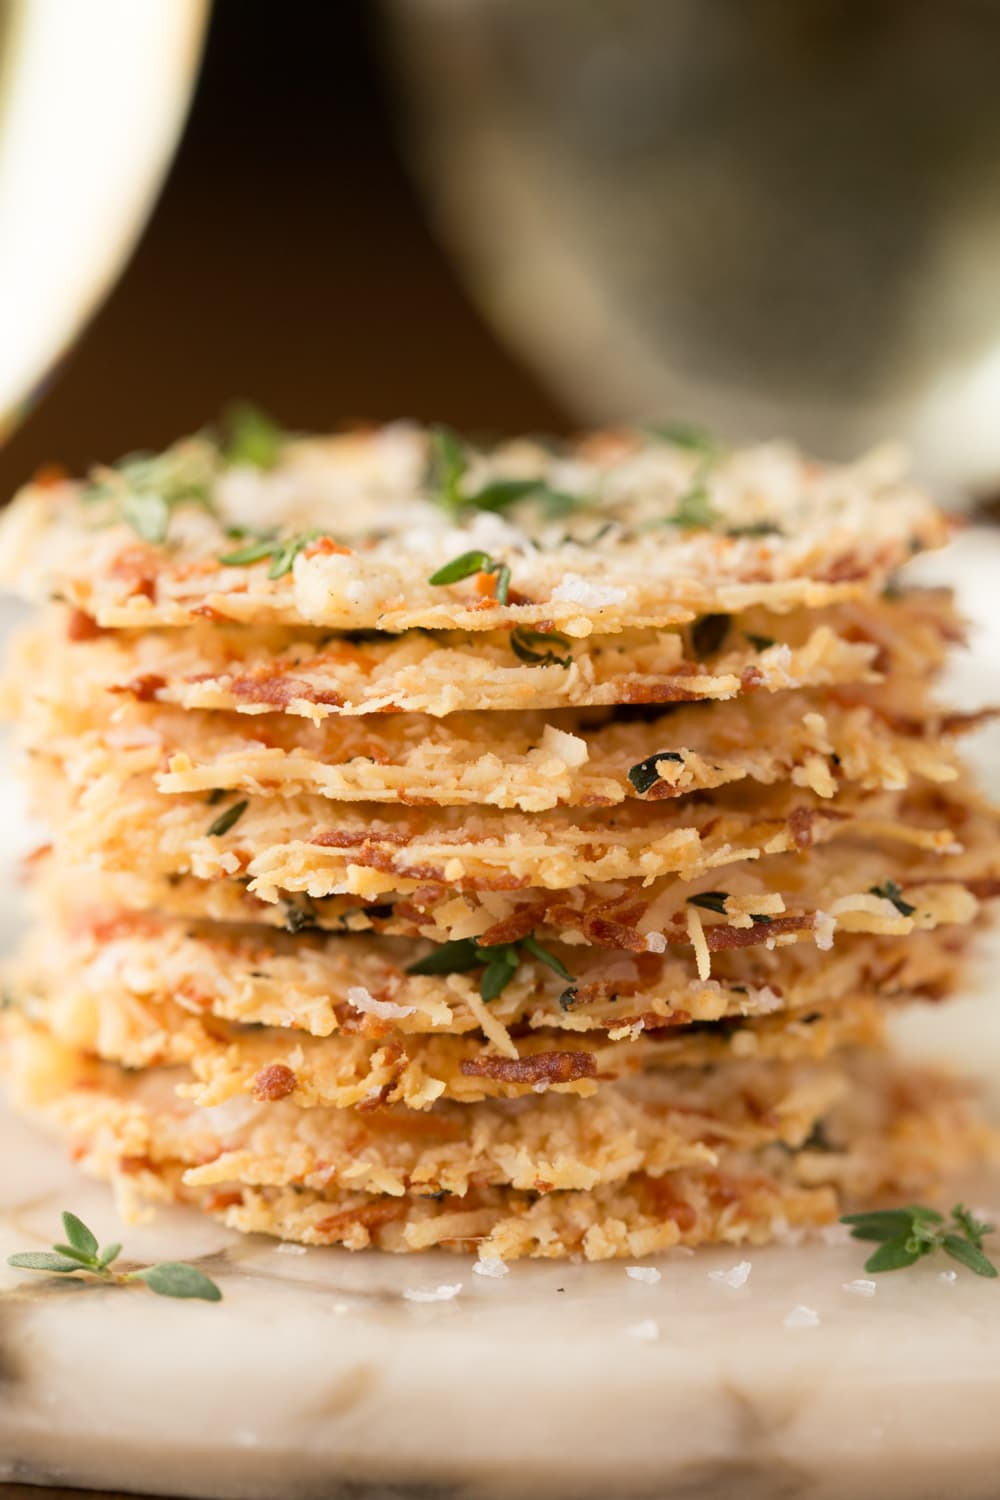 Parmesan Crisps with Thyme and Sea Salt - one of the most elegant (and easy!) Italian-inspired appetizers you'll ever have the pleasure of meeting. A delicious little bite to go with cocktails, on salads or as a soup topping. thecafesucrefarine.com